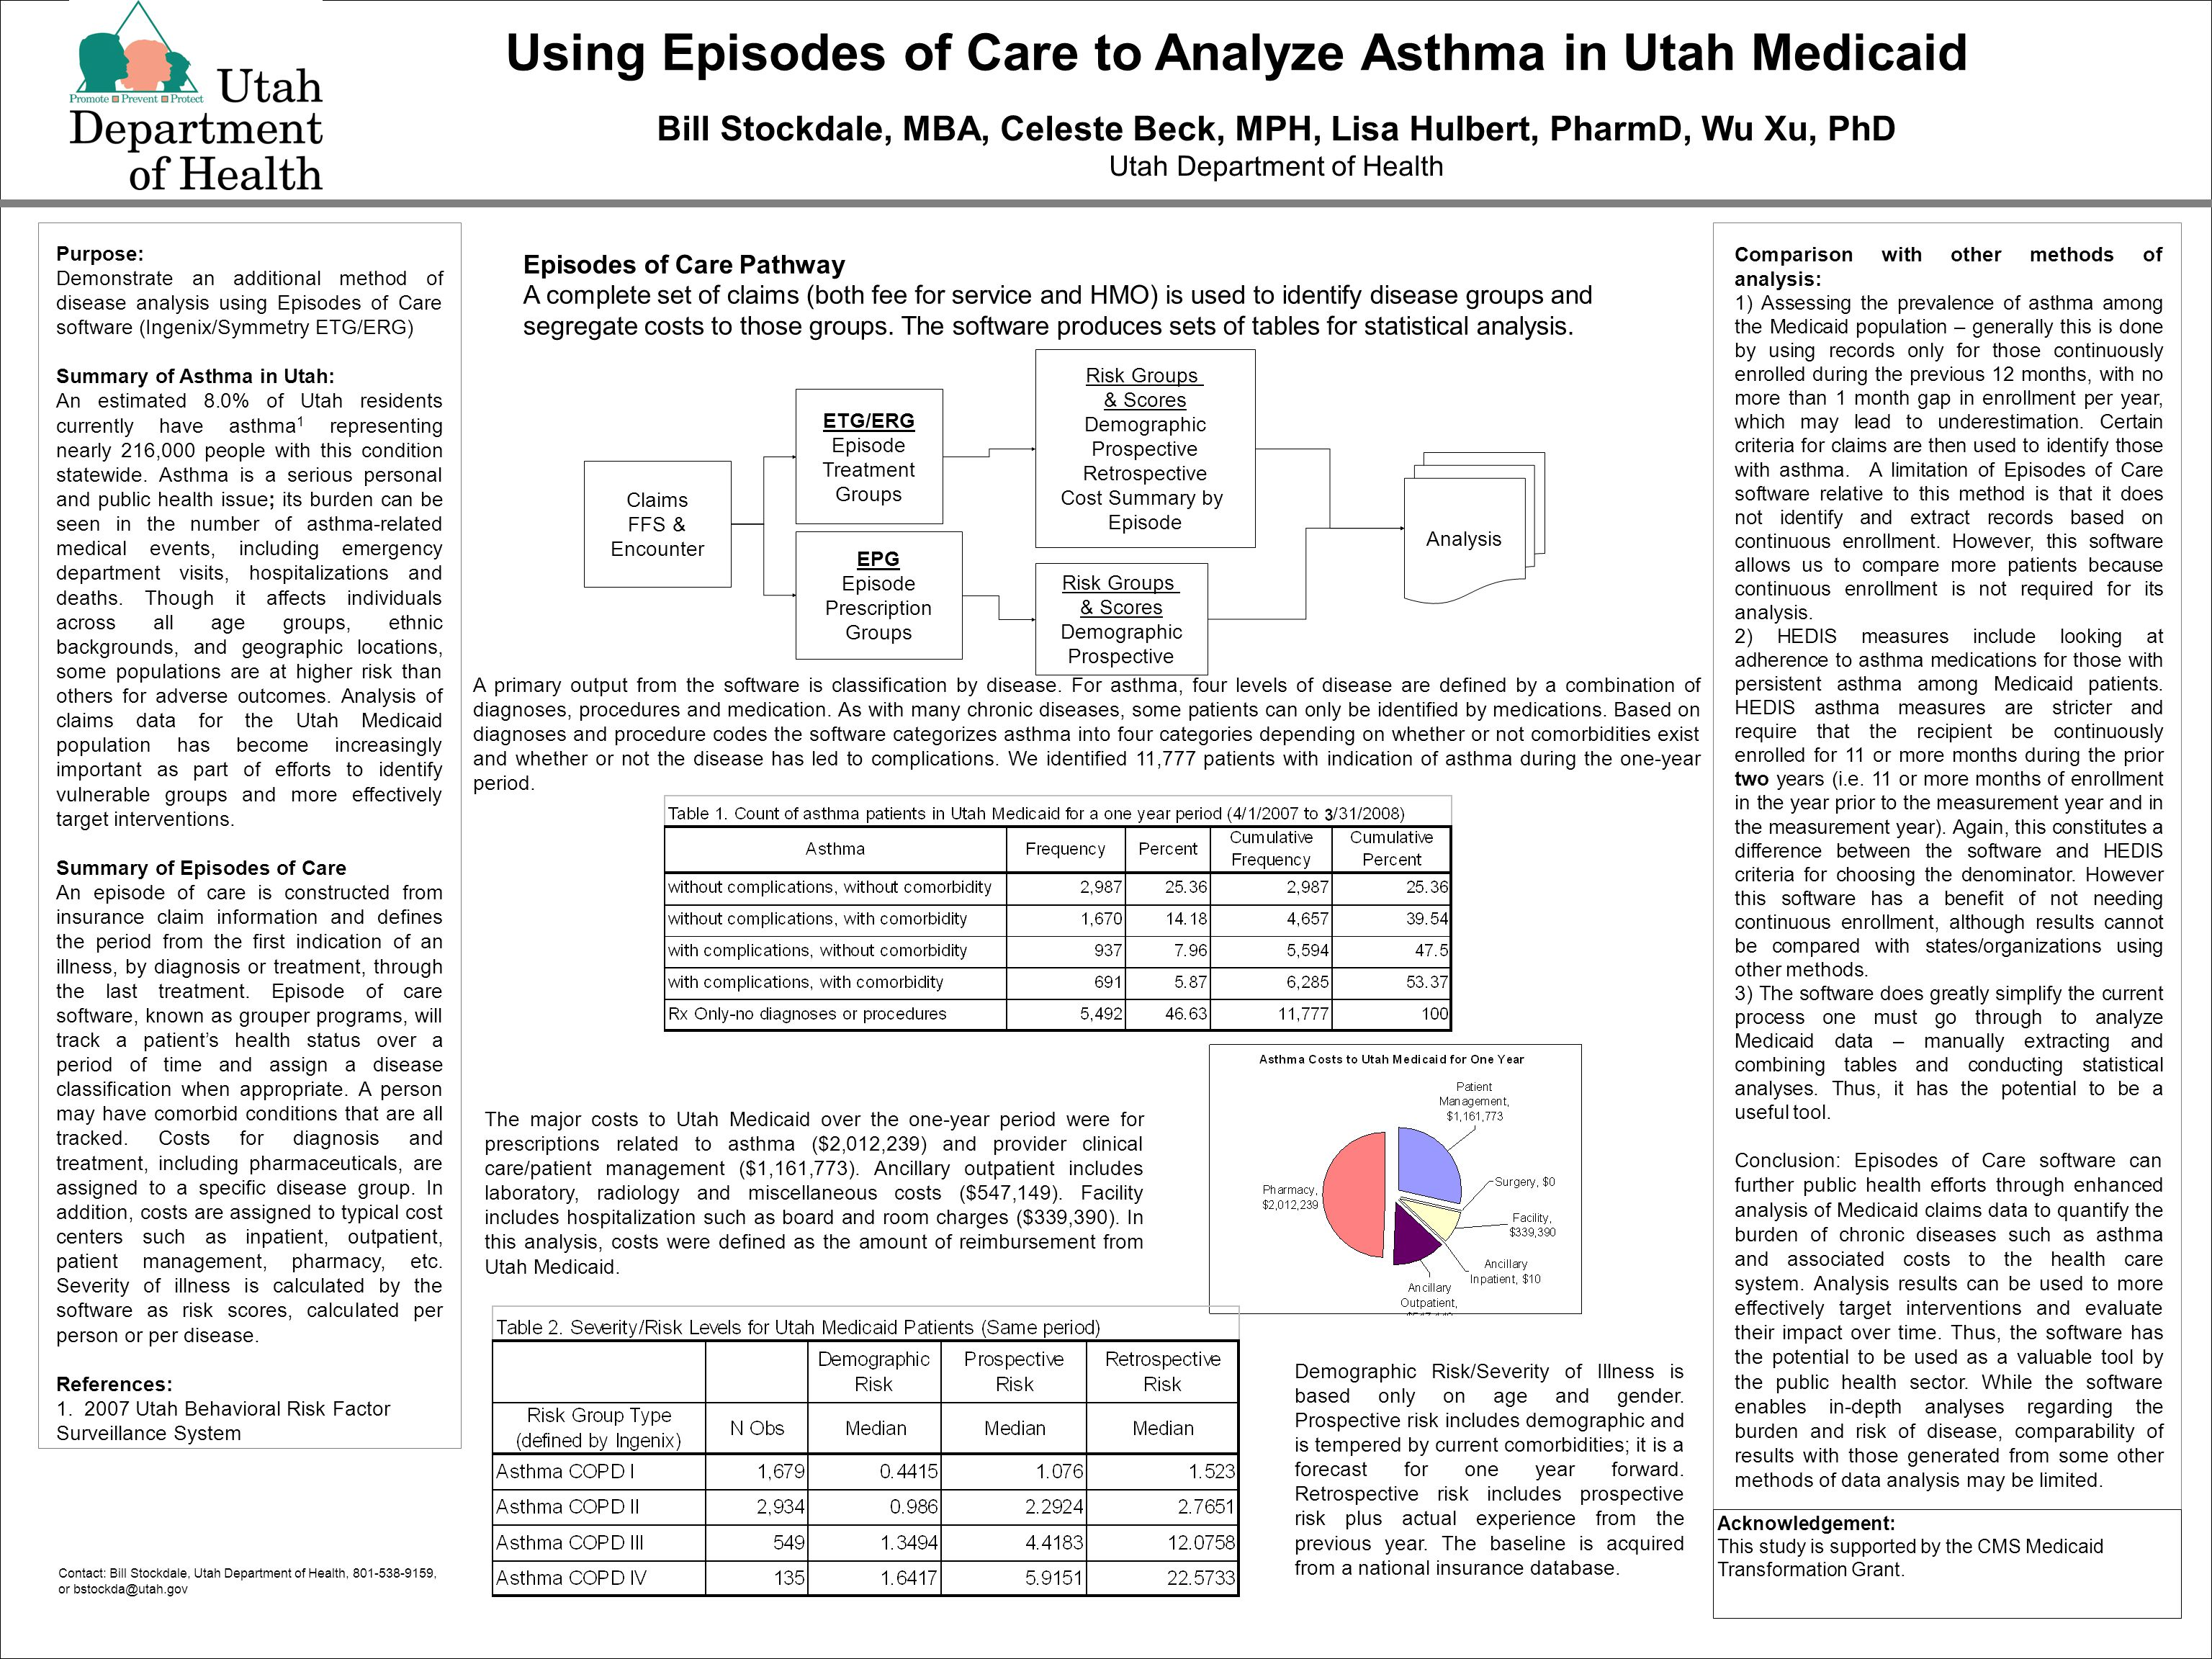 Bill Stockdale, MBA, Celeste Beck, MPH, Lisa Hulbert, PharmD, Wu Xu, PhD Utah Department of Health Comparison with other methods of analysis: 1) Asses